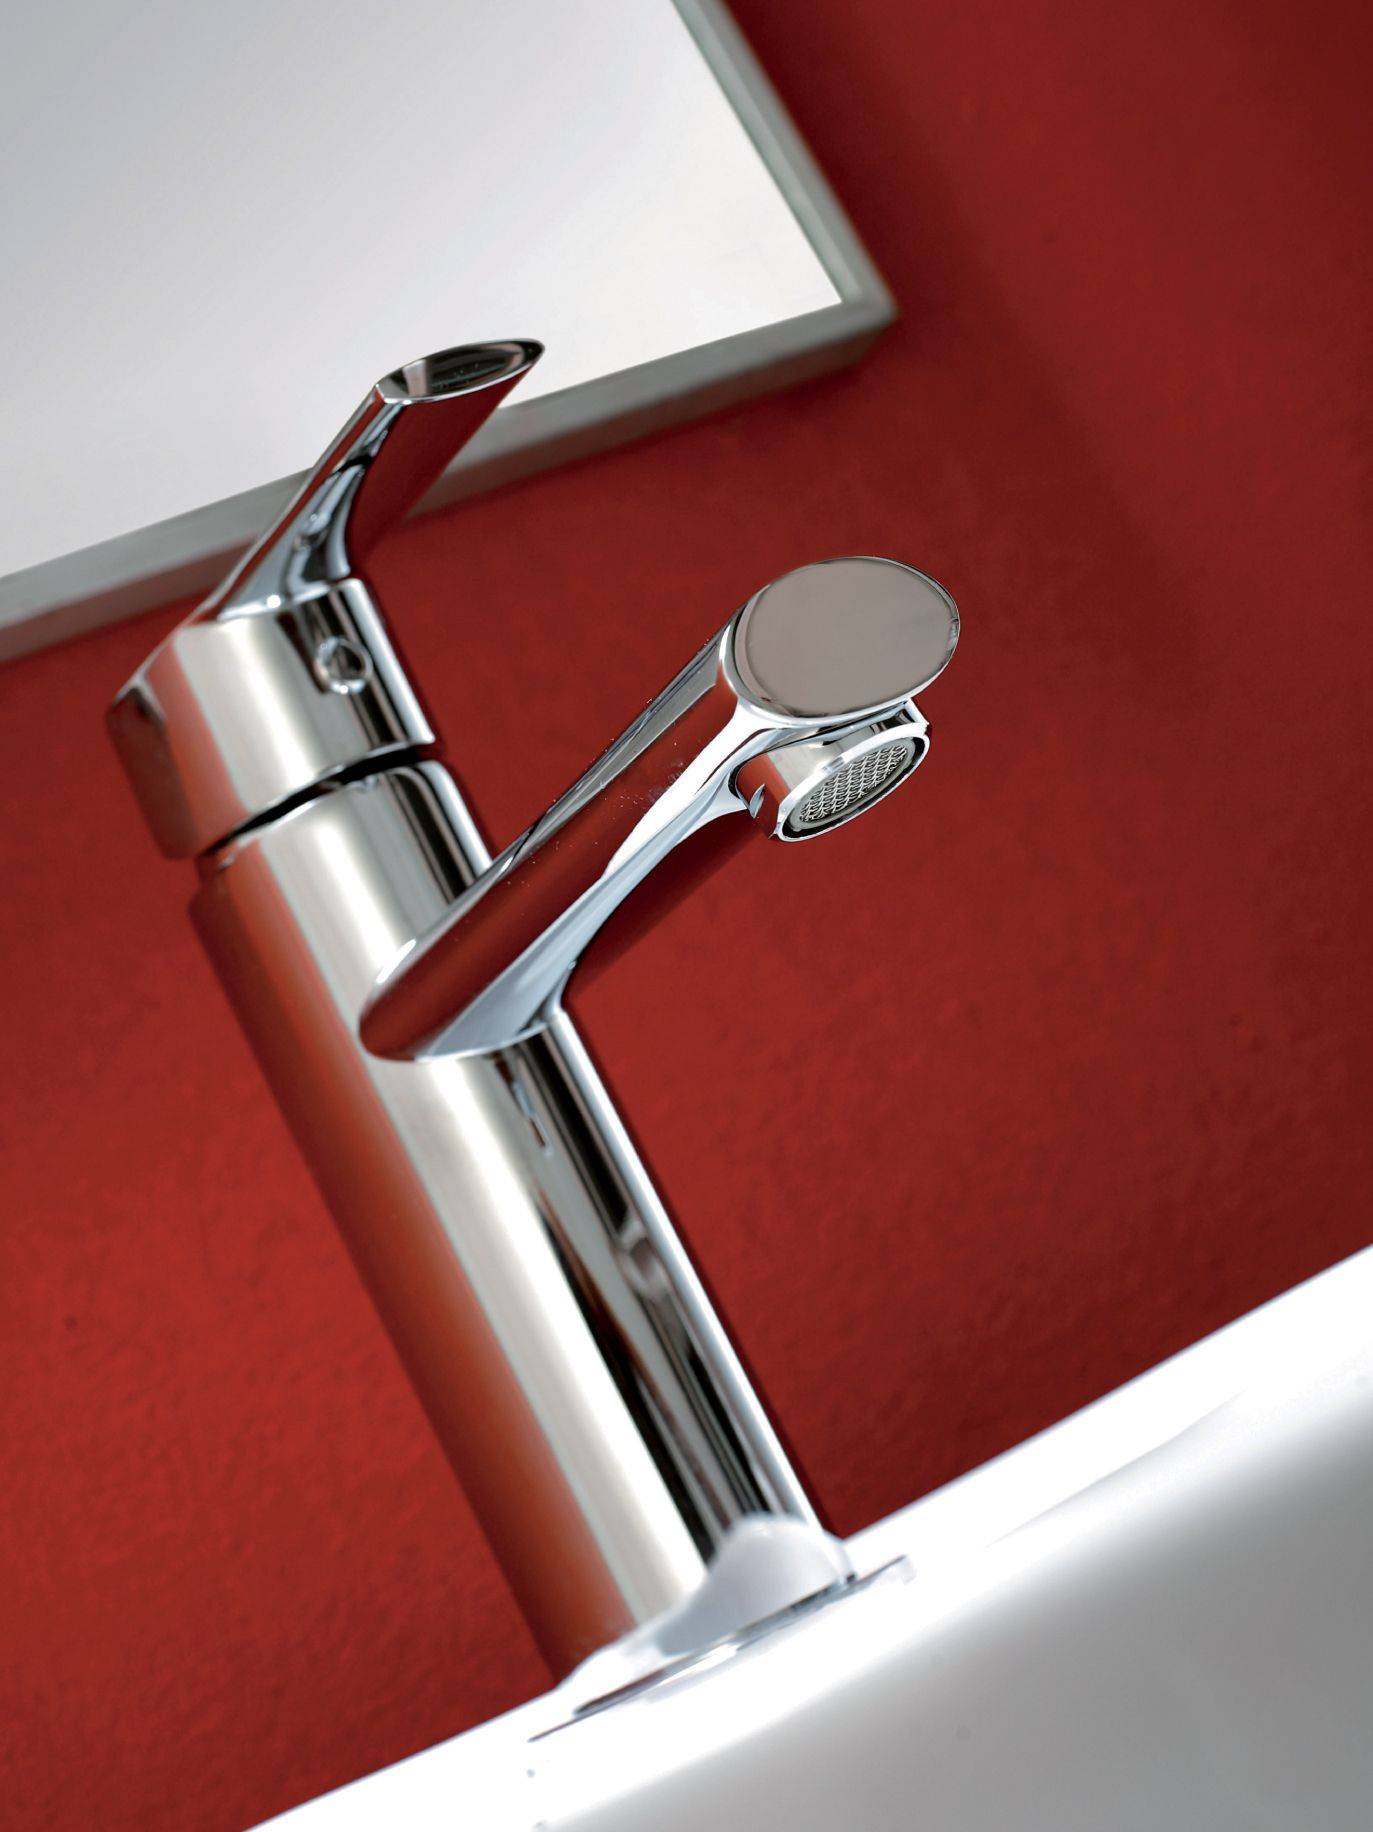 Basin mixer by Clever